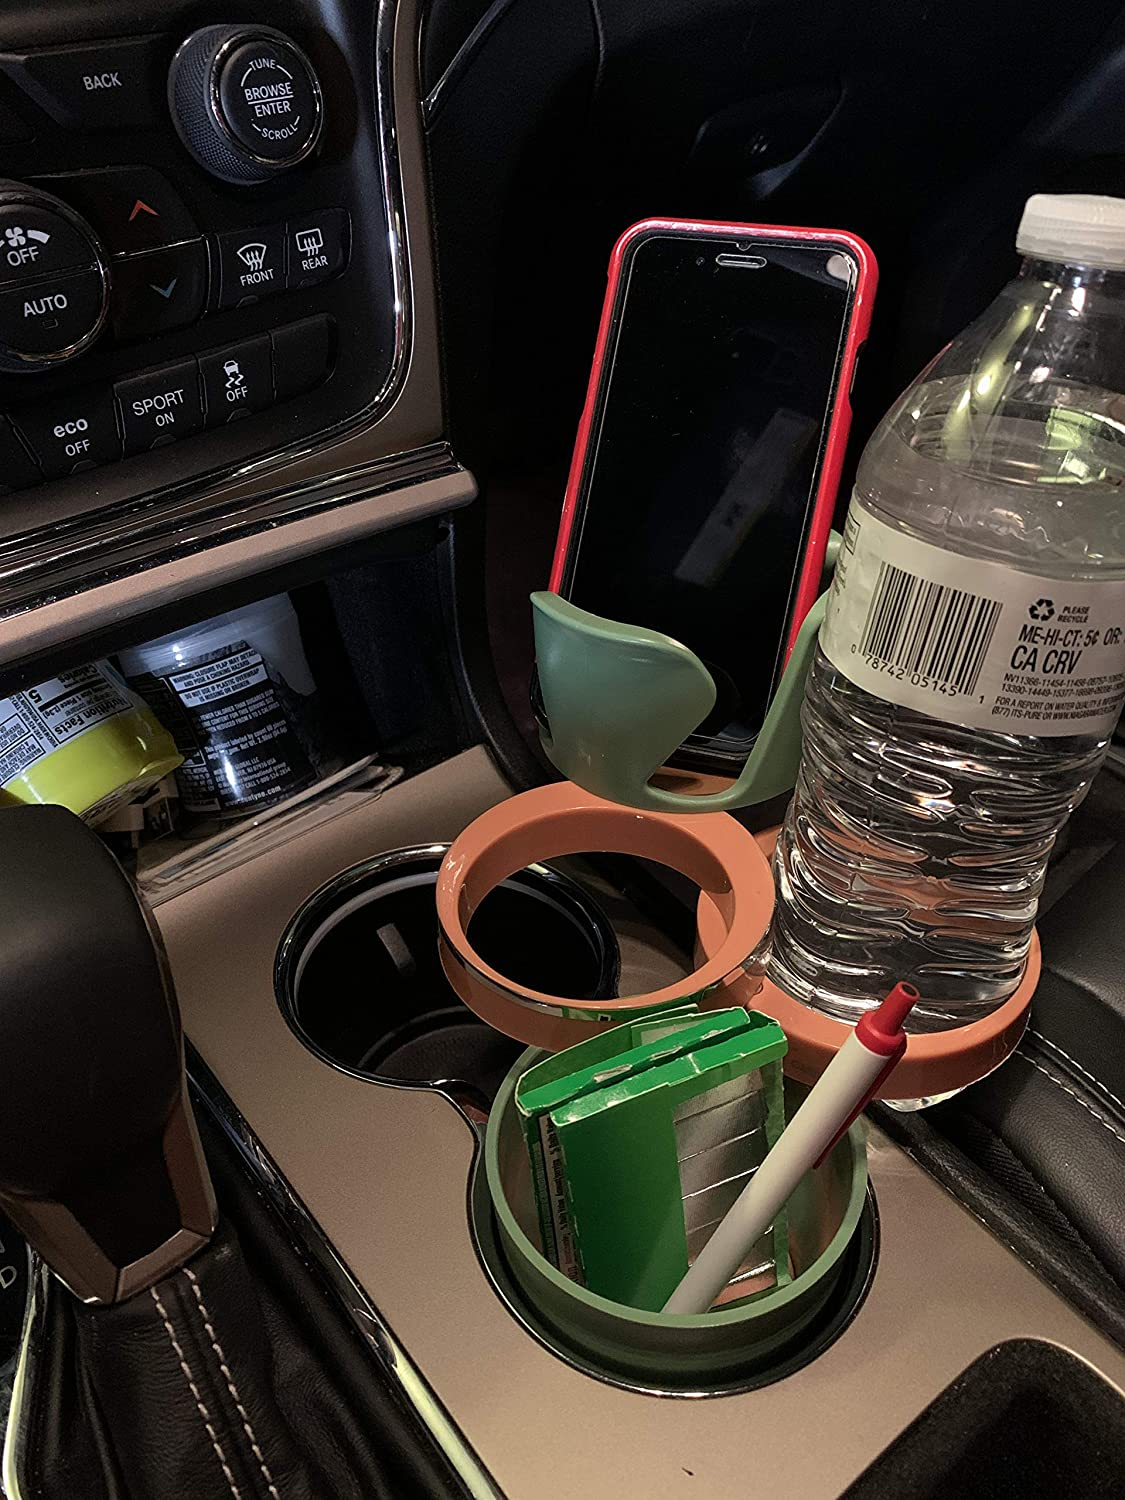 Blue 5 in 1 Car Cup Drink Phone Holder Multi-Functional Mugs Organizer Detachable Cell Auto Sunglasses Coins Keys Drink Storage Organizer